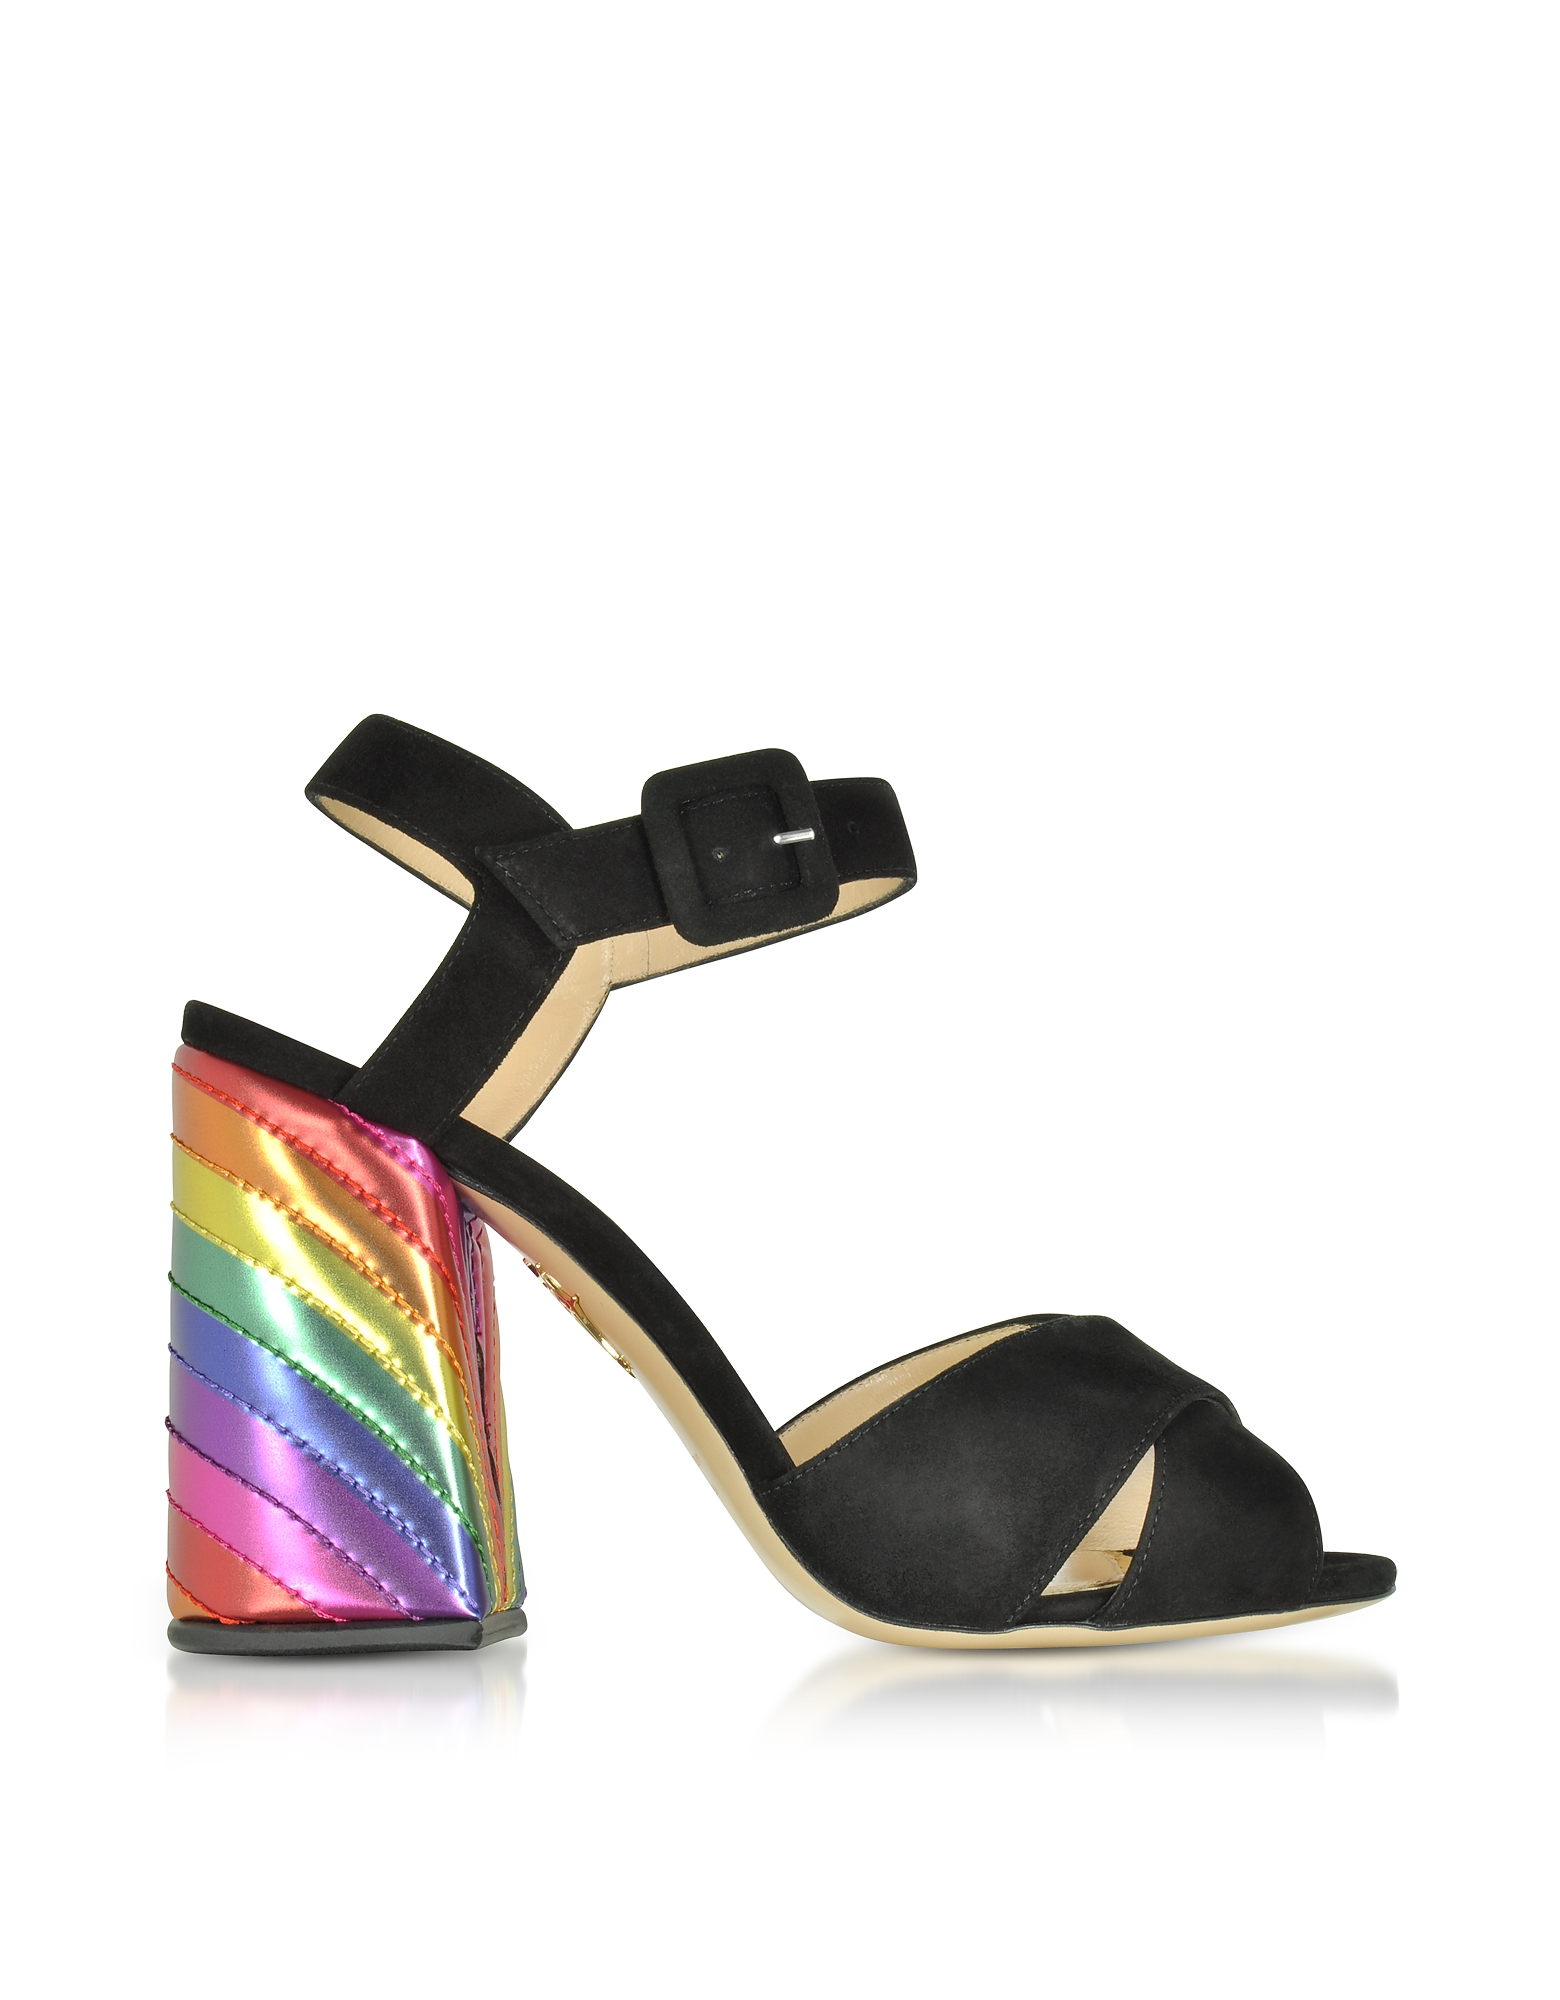 Charlotte Olympia Shoes, Emma Black Suede and Rainbow Patent Leather High Heel Sandals